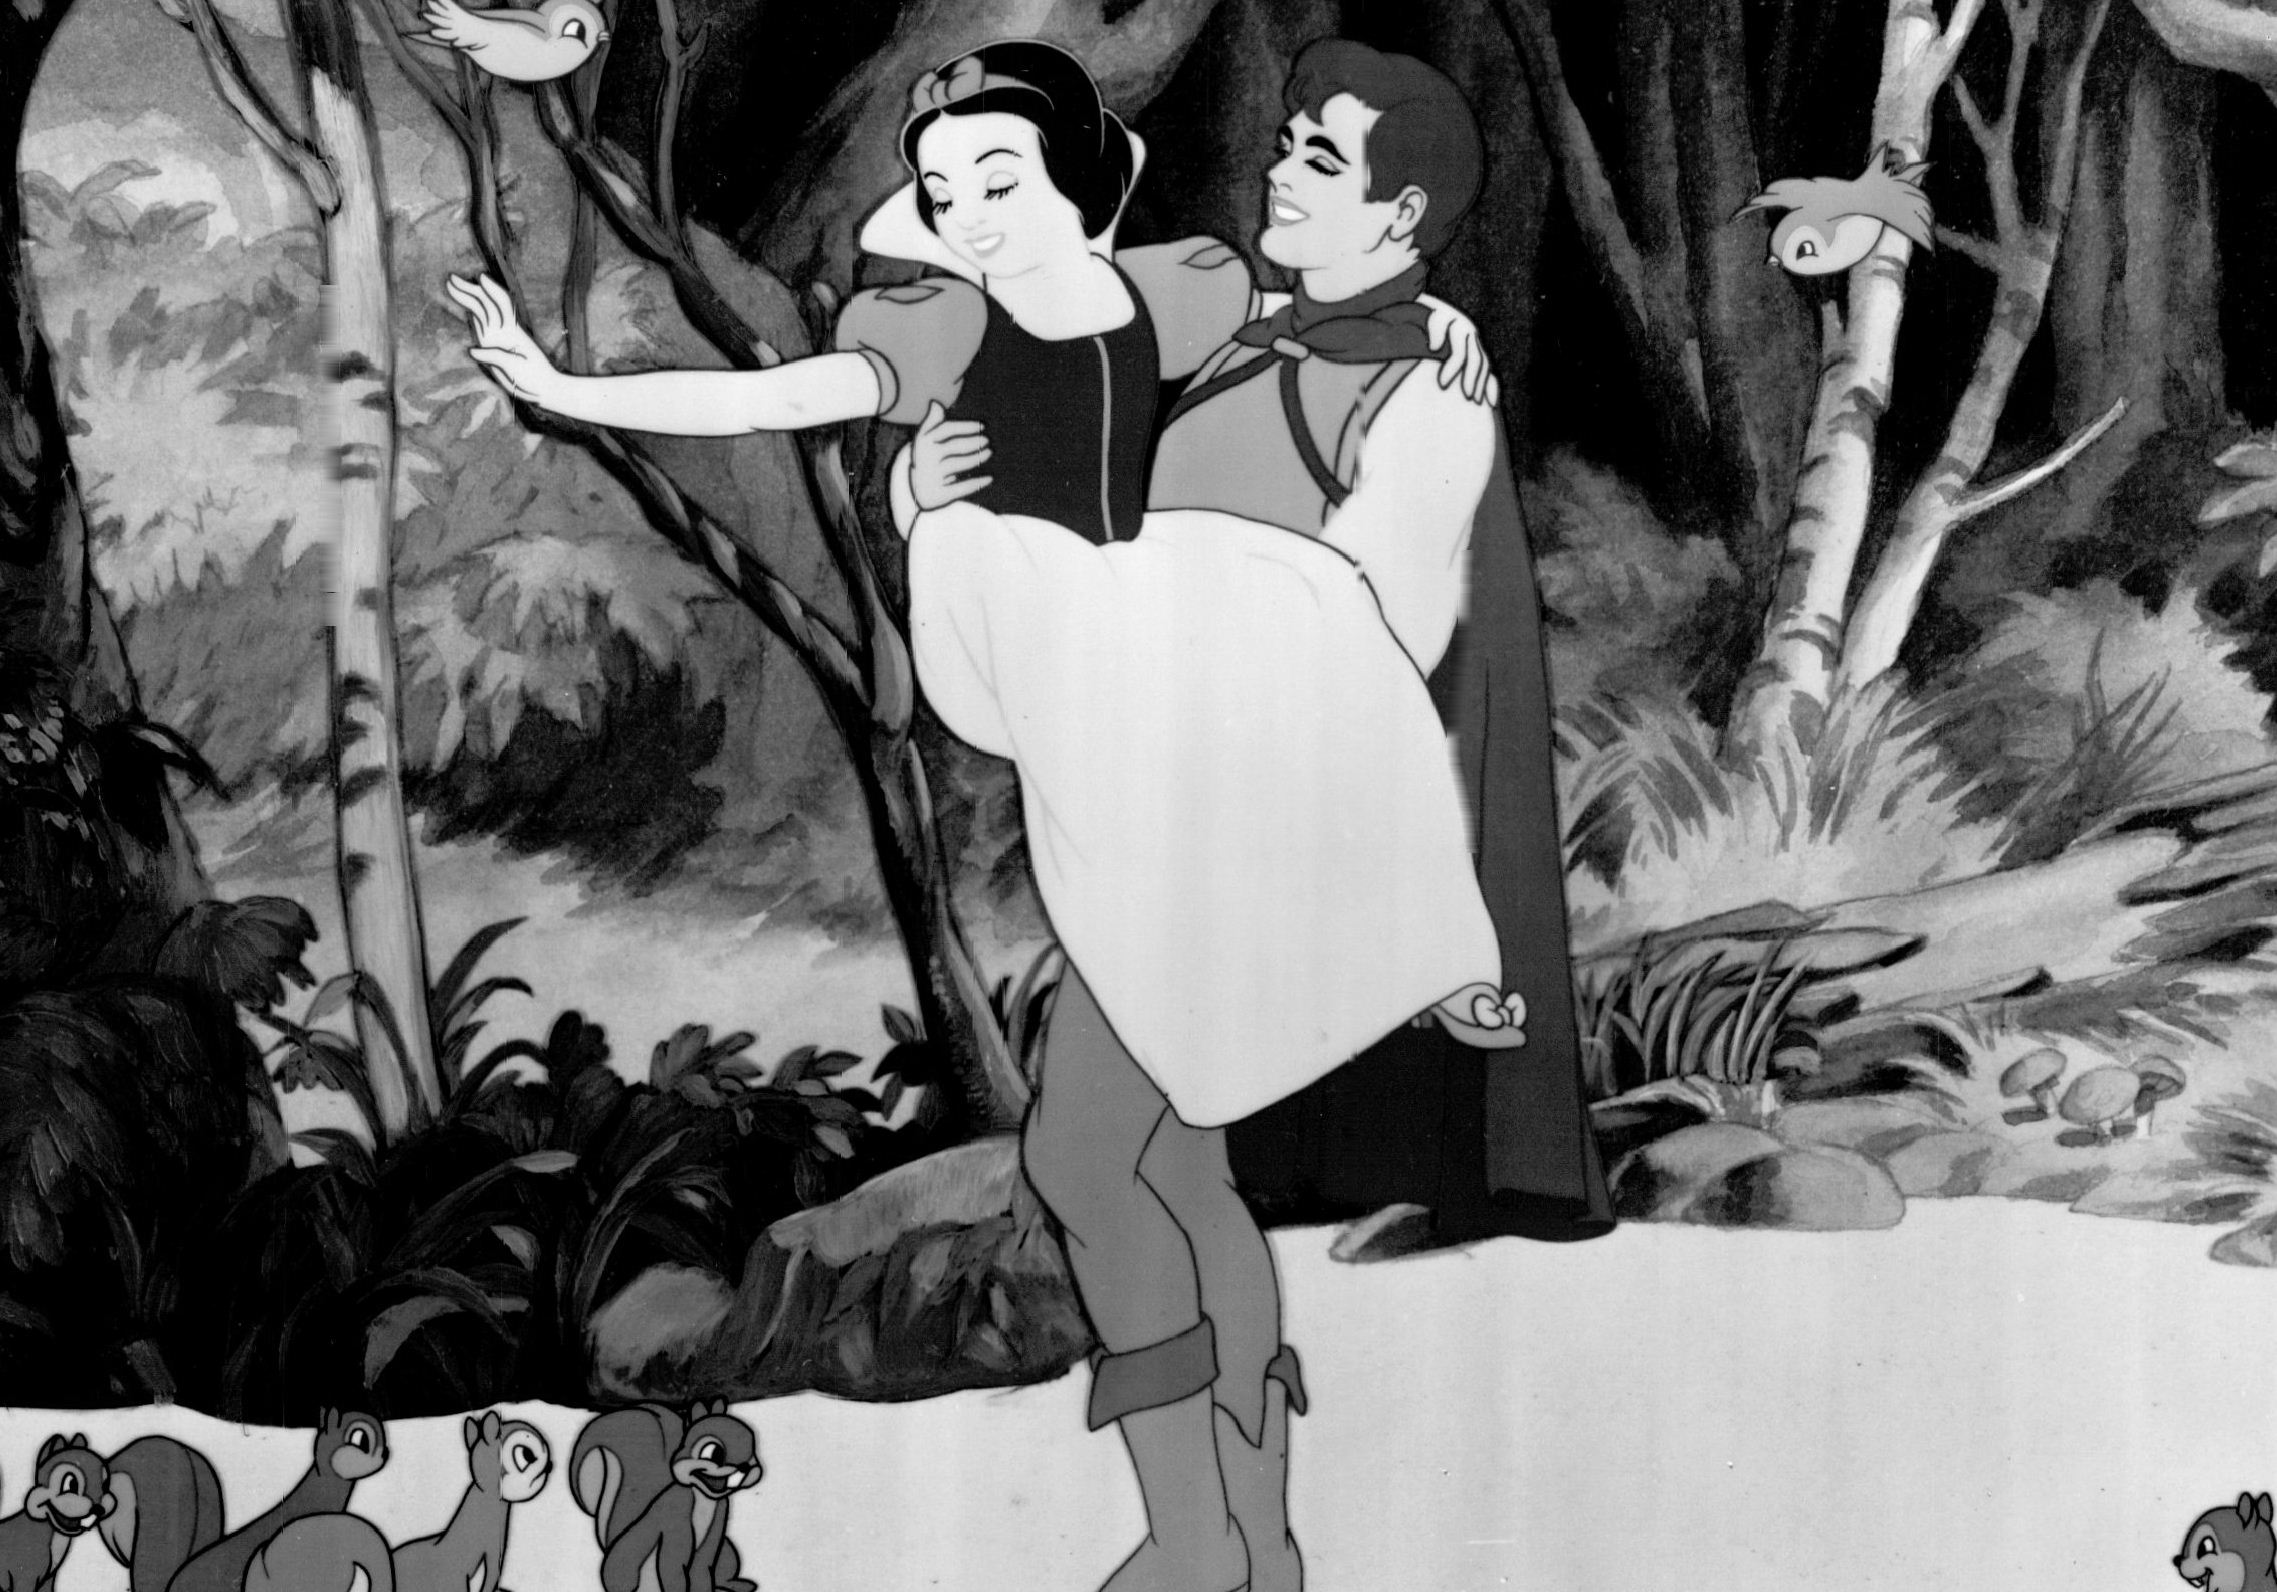 "Reunited with her true love, Snow White bids goodbye to her animal friends as the Prince carries her away in this scene from Walt Disney's first animated cartoon feature, ""Snow White and the Seven Dwarfs."""